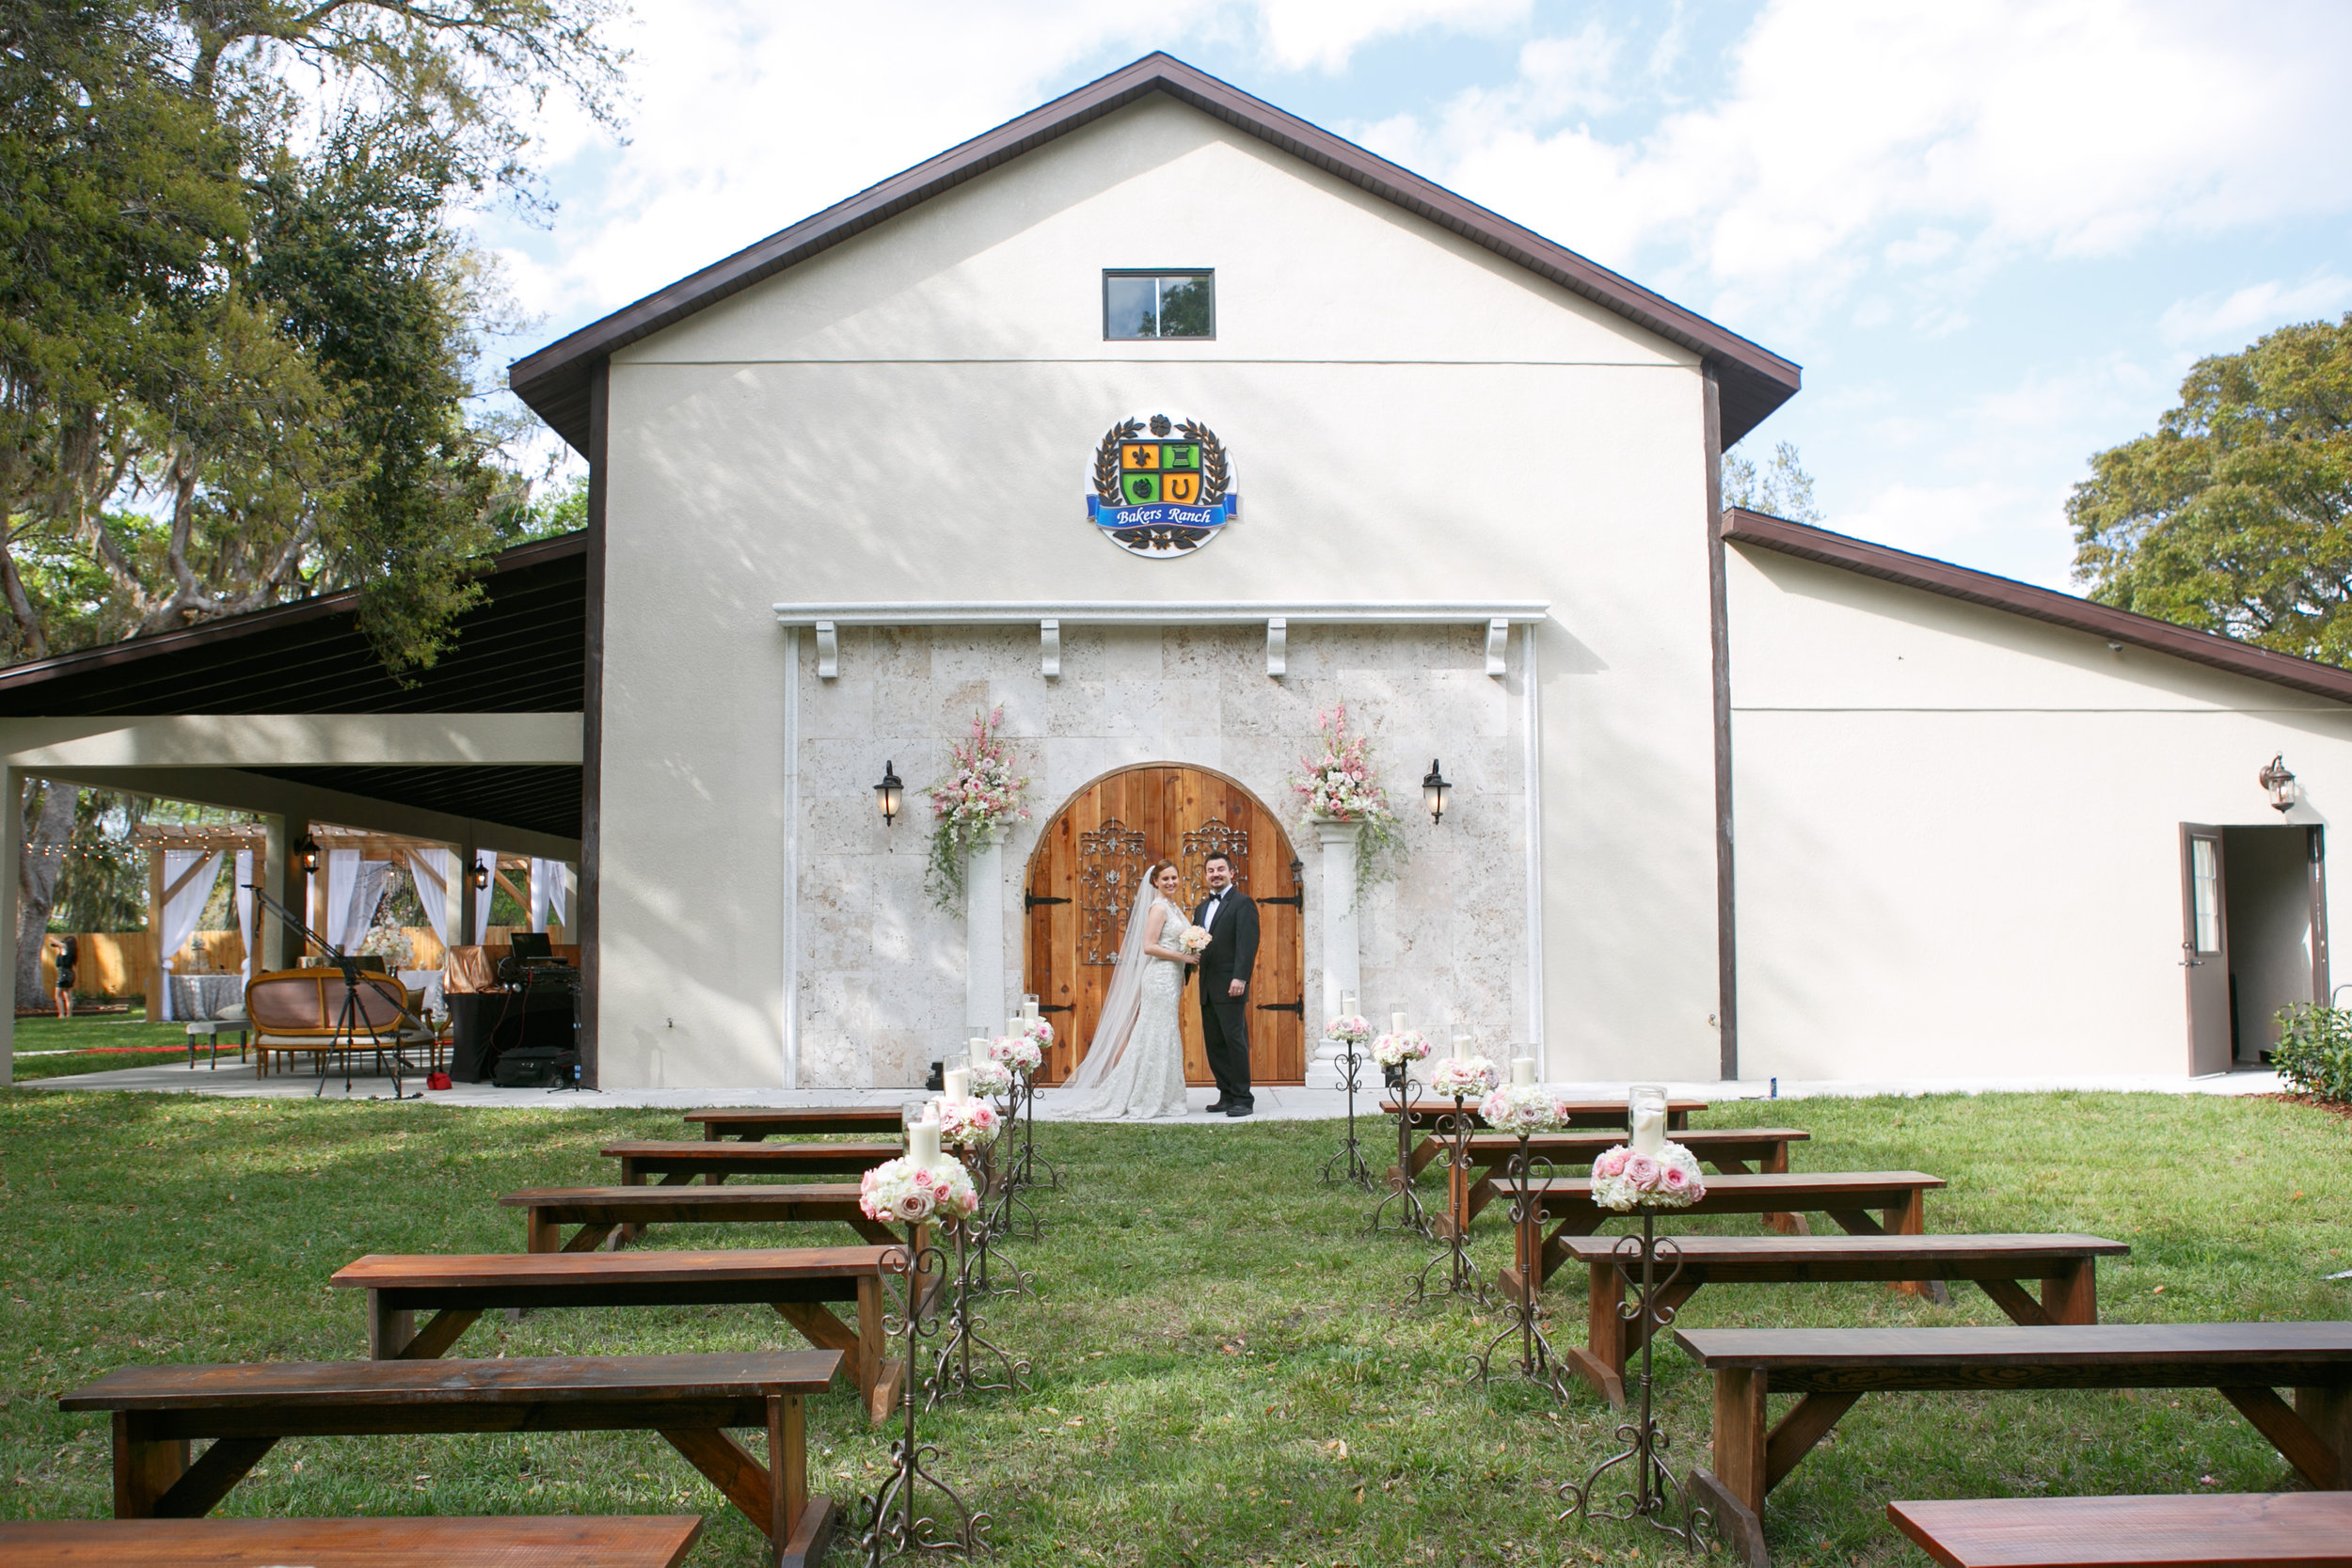 3_8_15 Bakers Ranch Wedding Venue 452.jpg